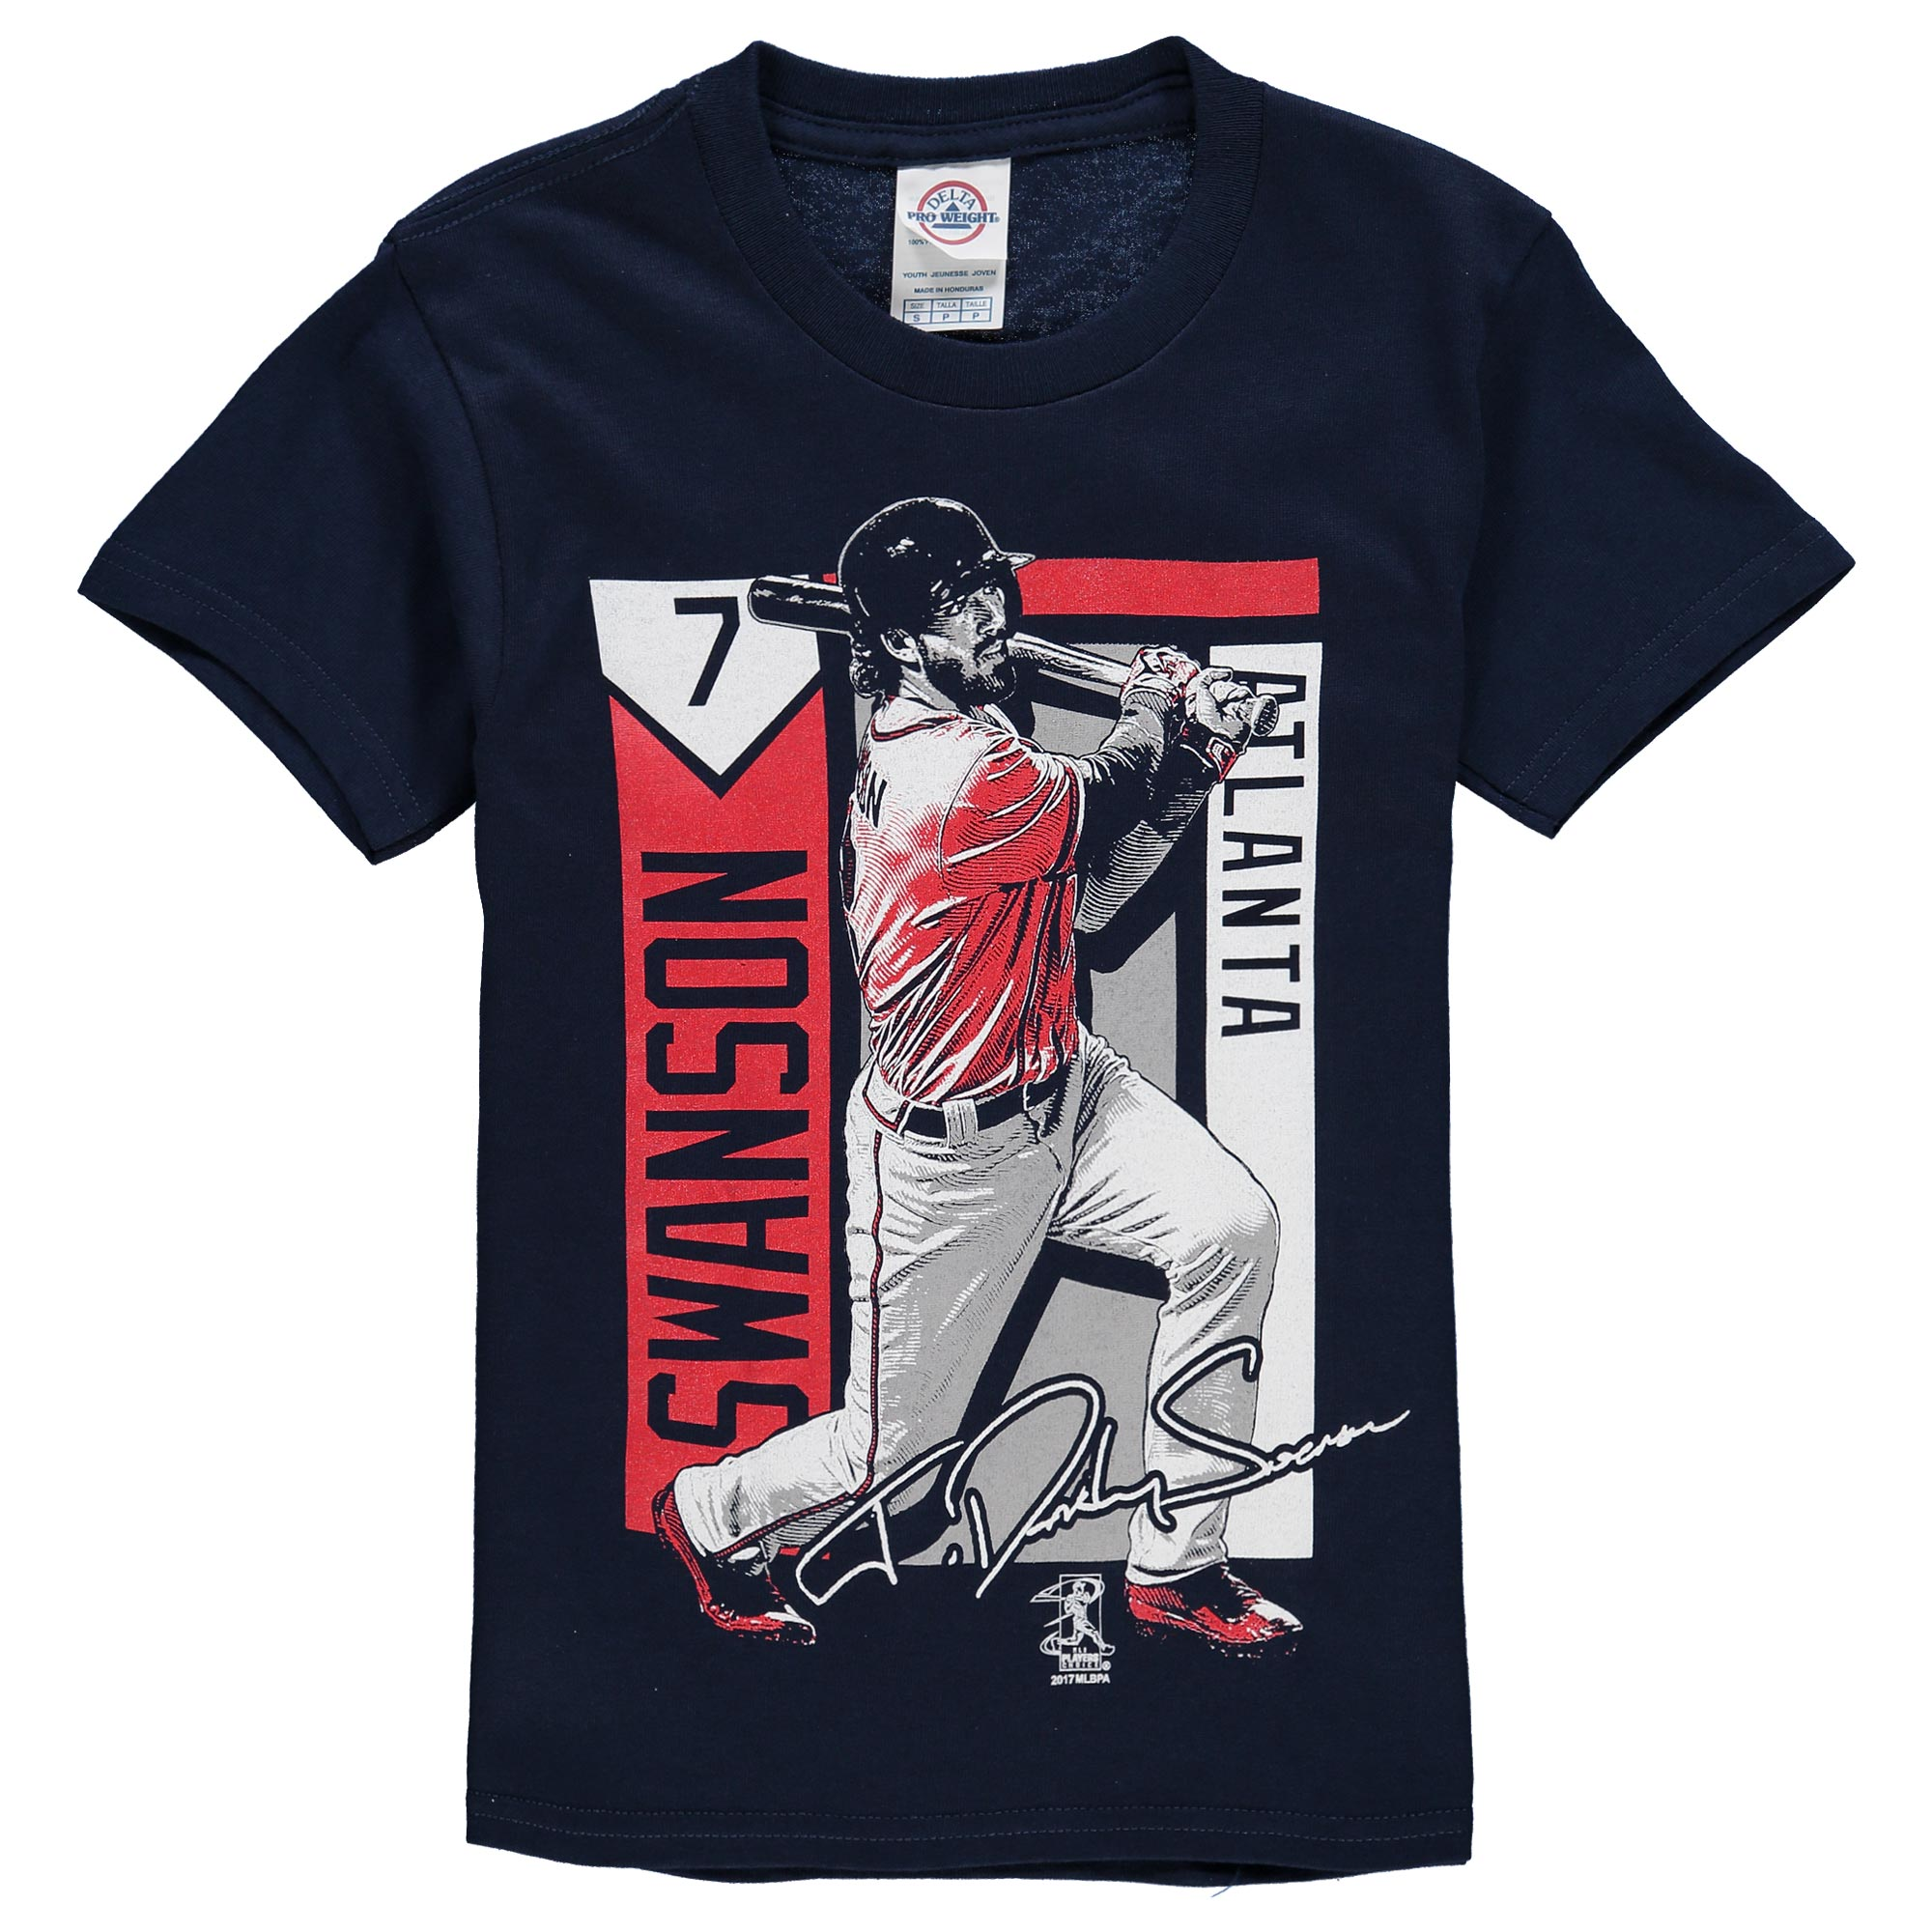 Dansby Swanson Atlanta Braves Youth Color Block Player Series Graphic T-Shirt - Navy